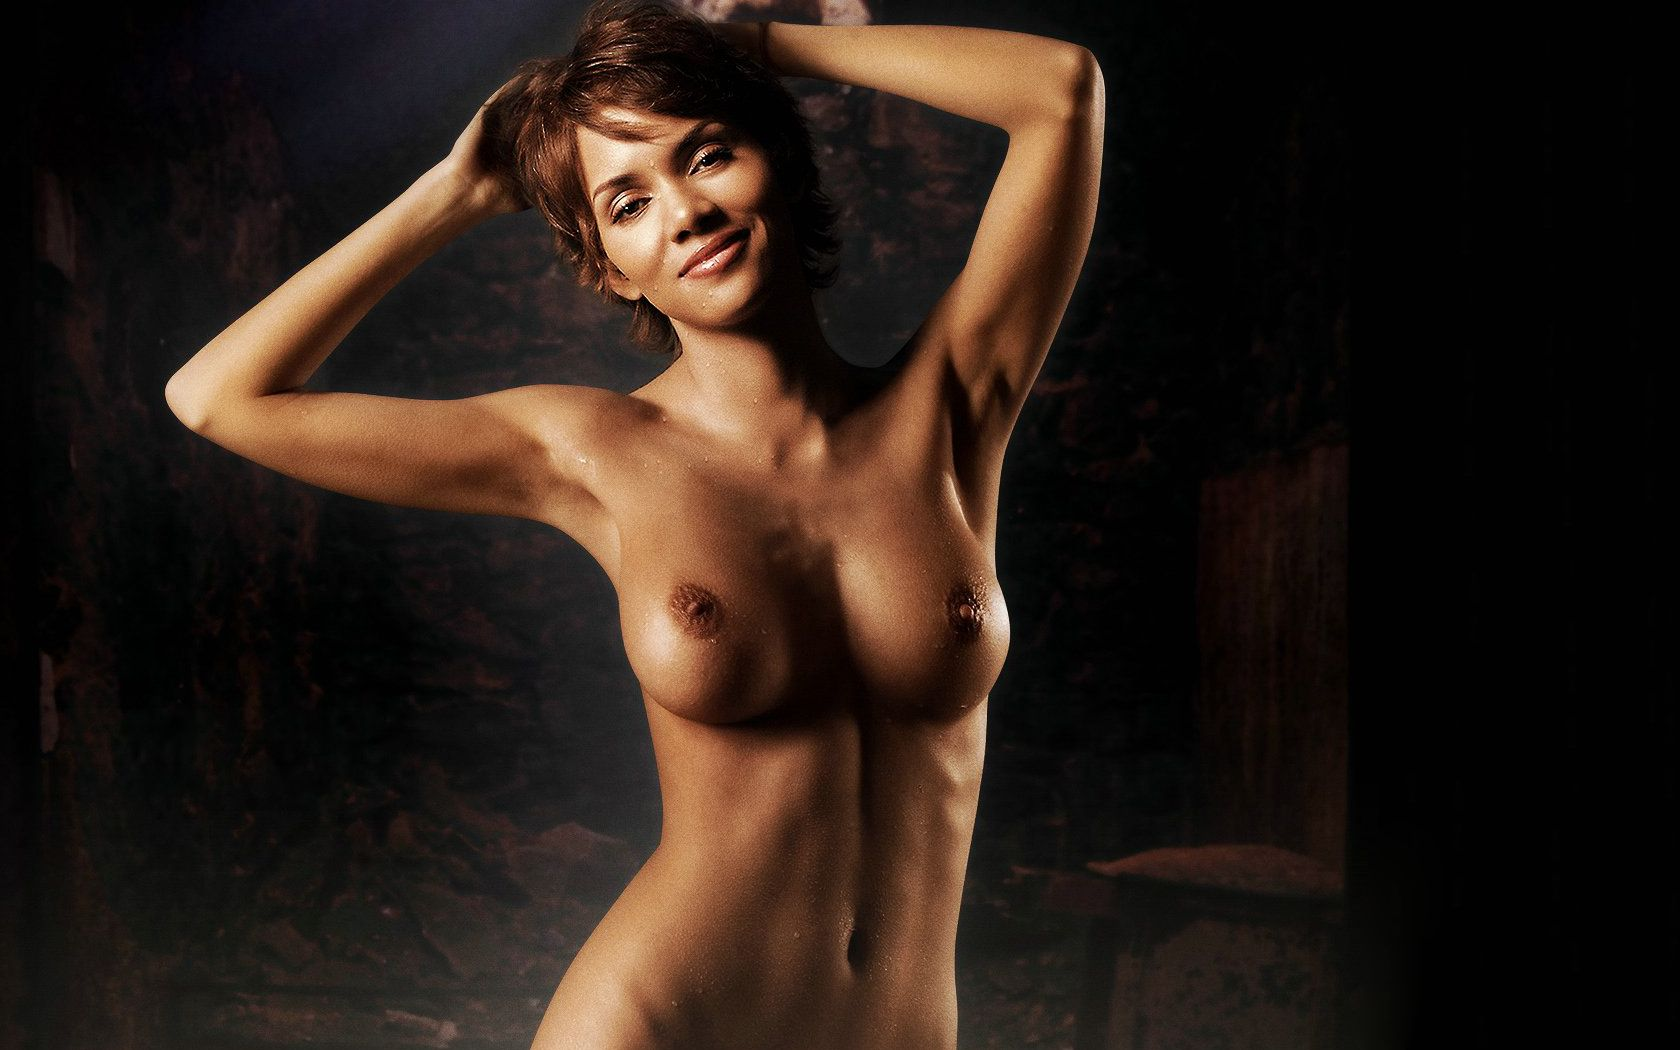 Not Halle berry nude fakes pity